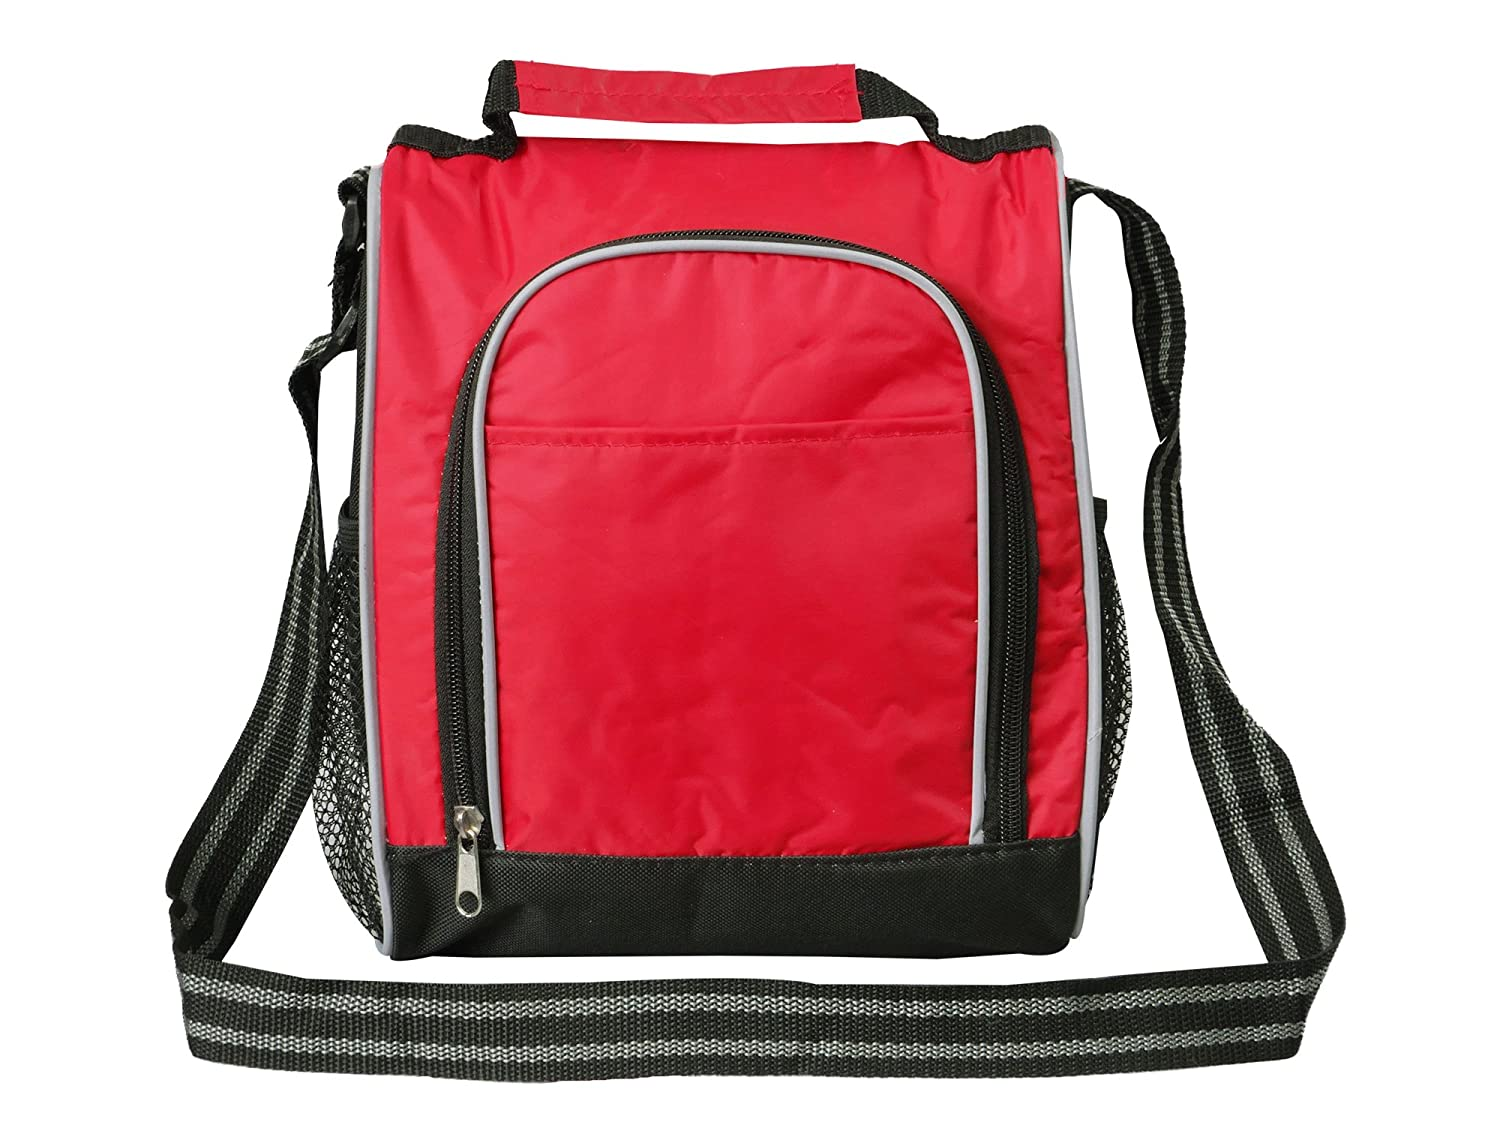 lunch box for adults by bayfield shoulder strap lunch bags for men women red ebay. Black Bedroom Furniture Sets. Home Design Ideas